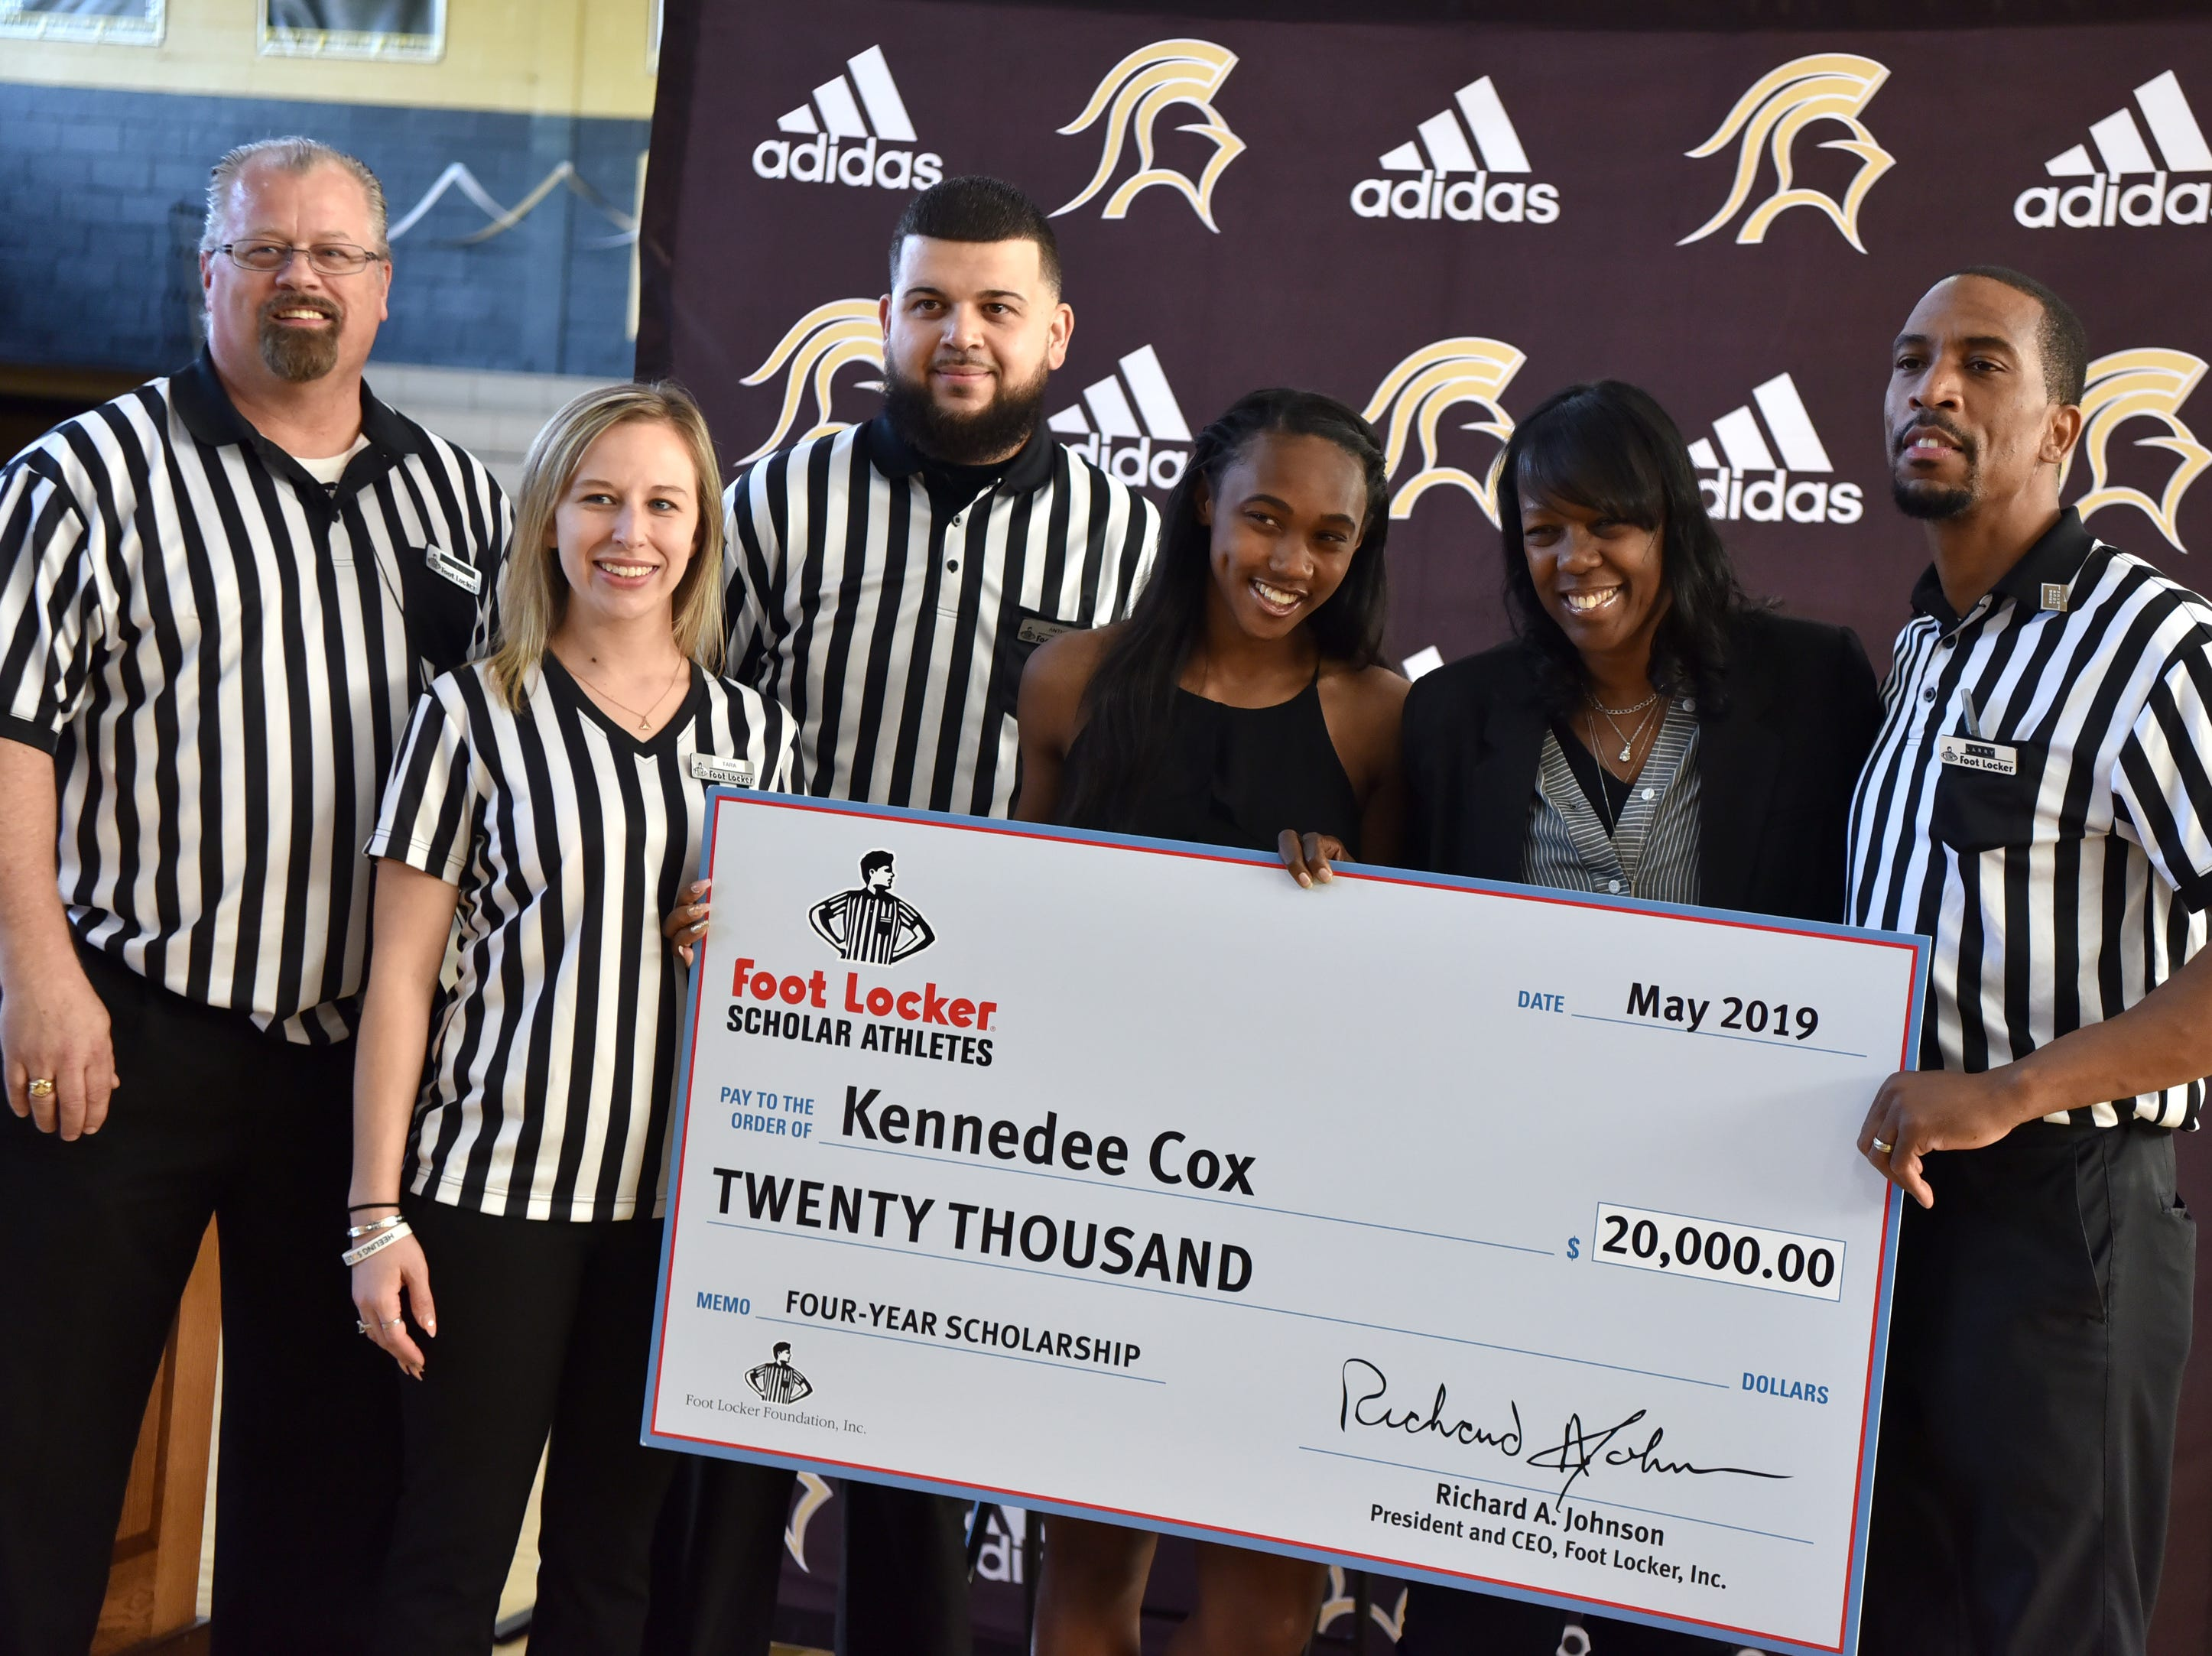 Paramus Catholic senior Kennedee Cox and her mother Beverlee Garvin, pose for pictures with a $20,000 check Cox received from the Foot Locker Scholar Athletes Program. Cox, of Teaneck, runs track at Paramus Catholic. Foot Locker representatives surprised Cox with the announcement at school on Wednesday, May 15, 2019.